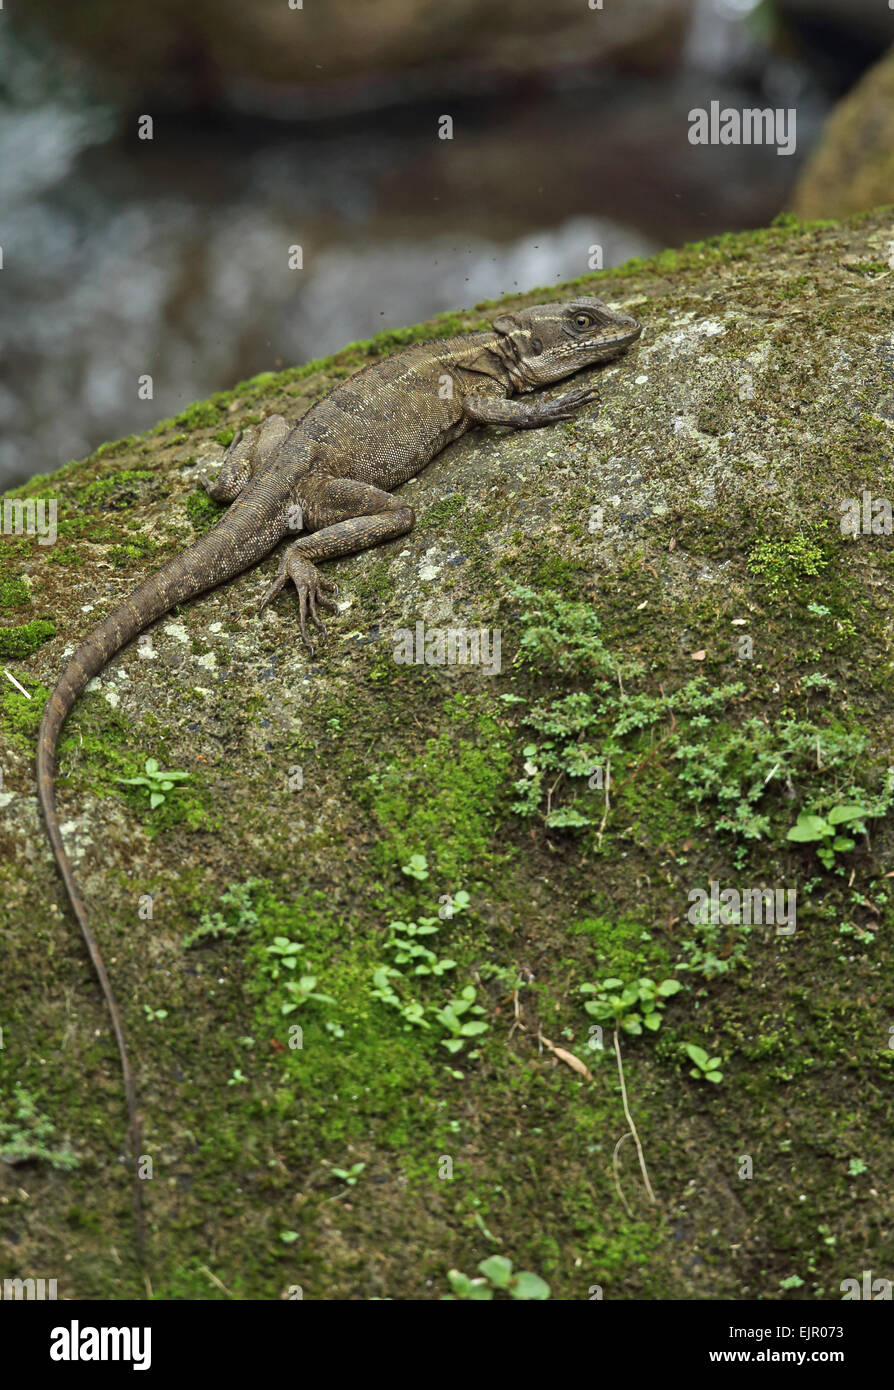 Common Basilisk (Basiliscus basiliscus) adult, with small insects in flight around head, resting on rock in river, Stock Photo